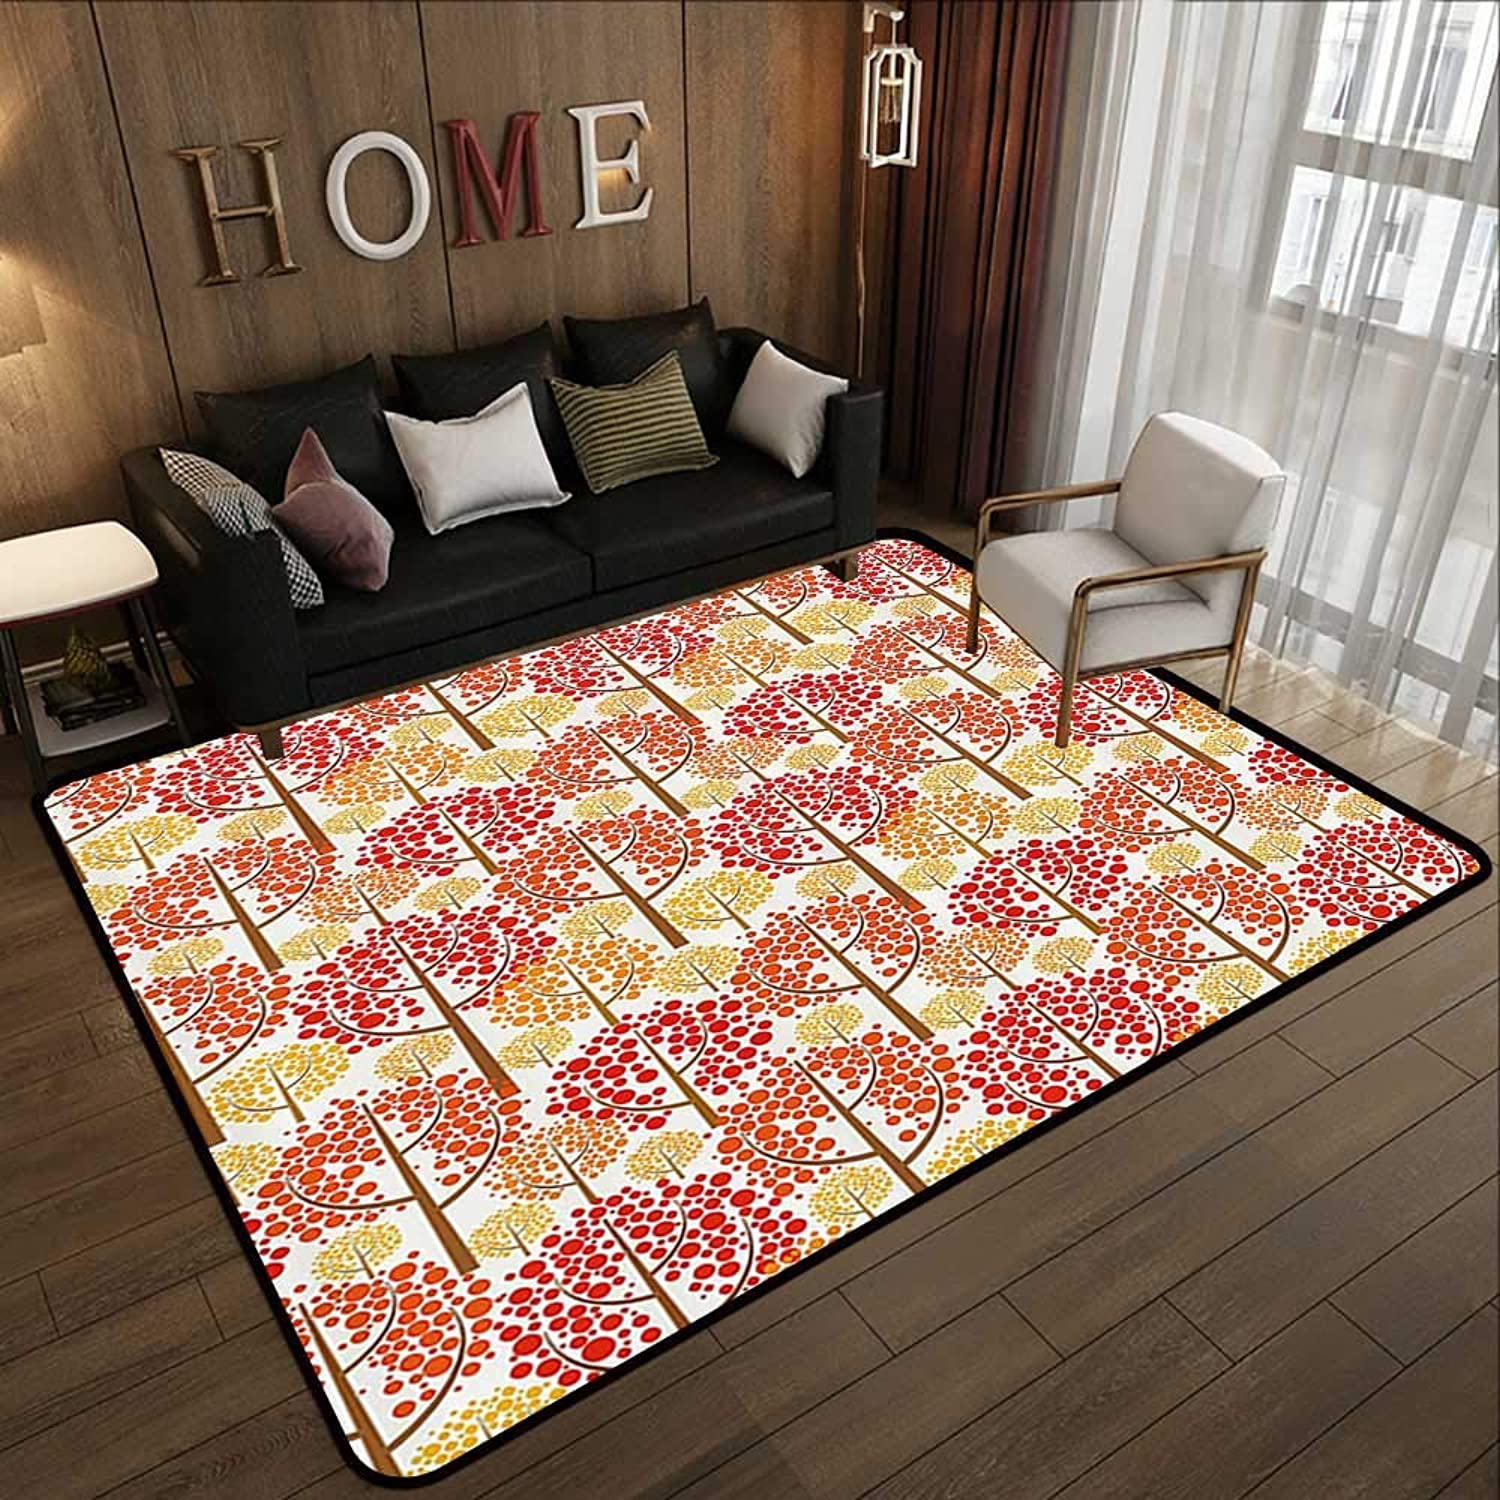 Carpet mat,Abstract,Autumn Forest Inspired Trees with Dot Leaves Fall Elegance Graphic,Red Marigold Light Caramel 47 x 59  Floor Mat Entrance Doormat